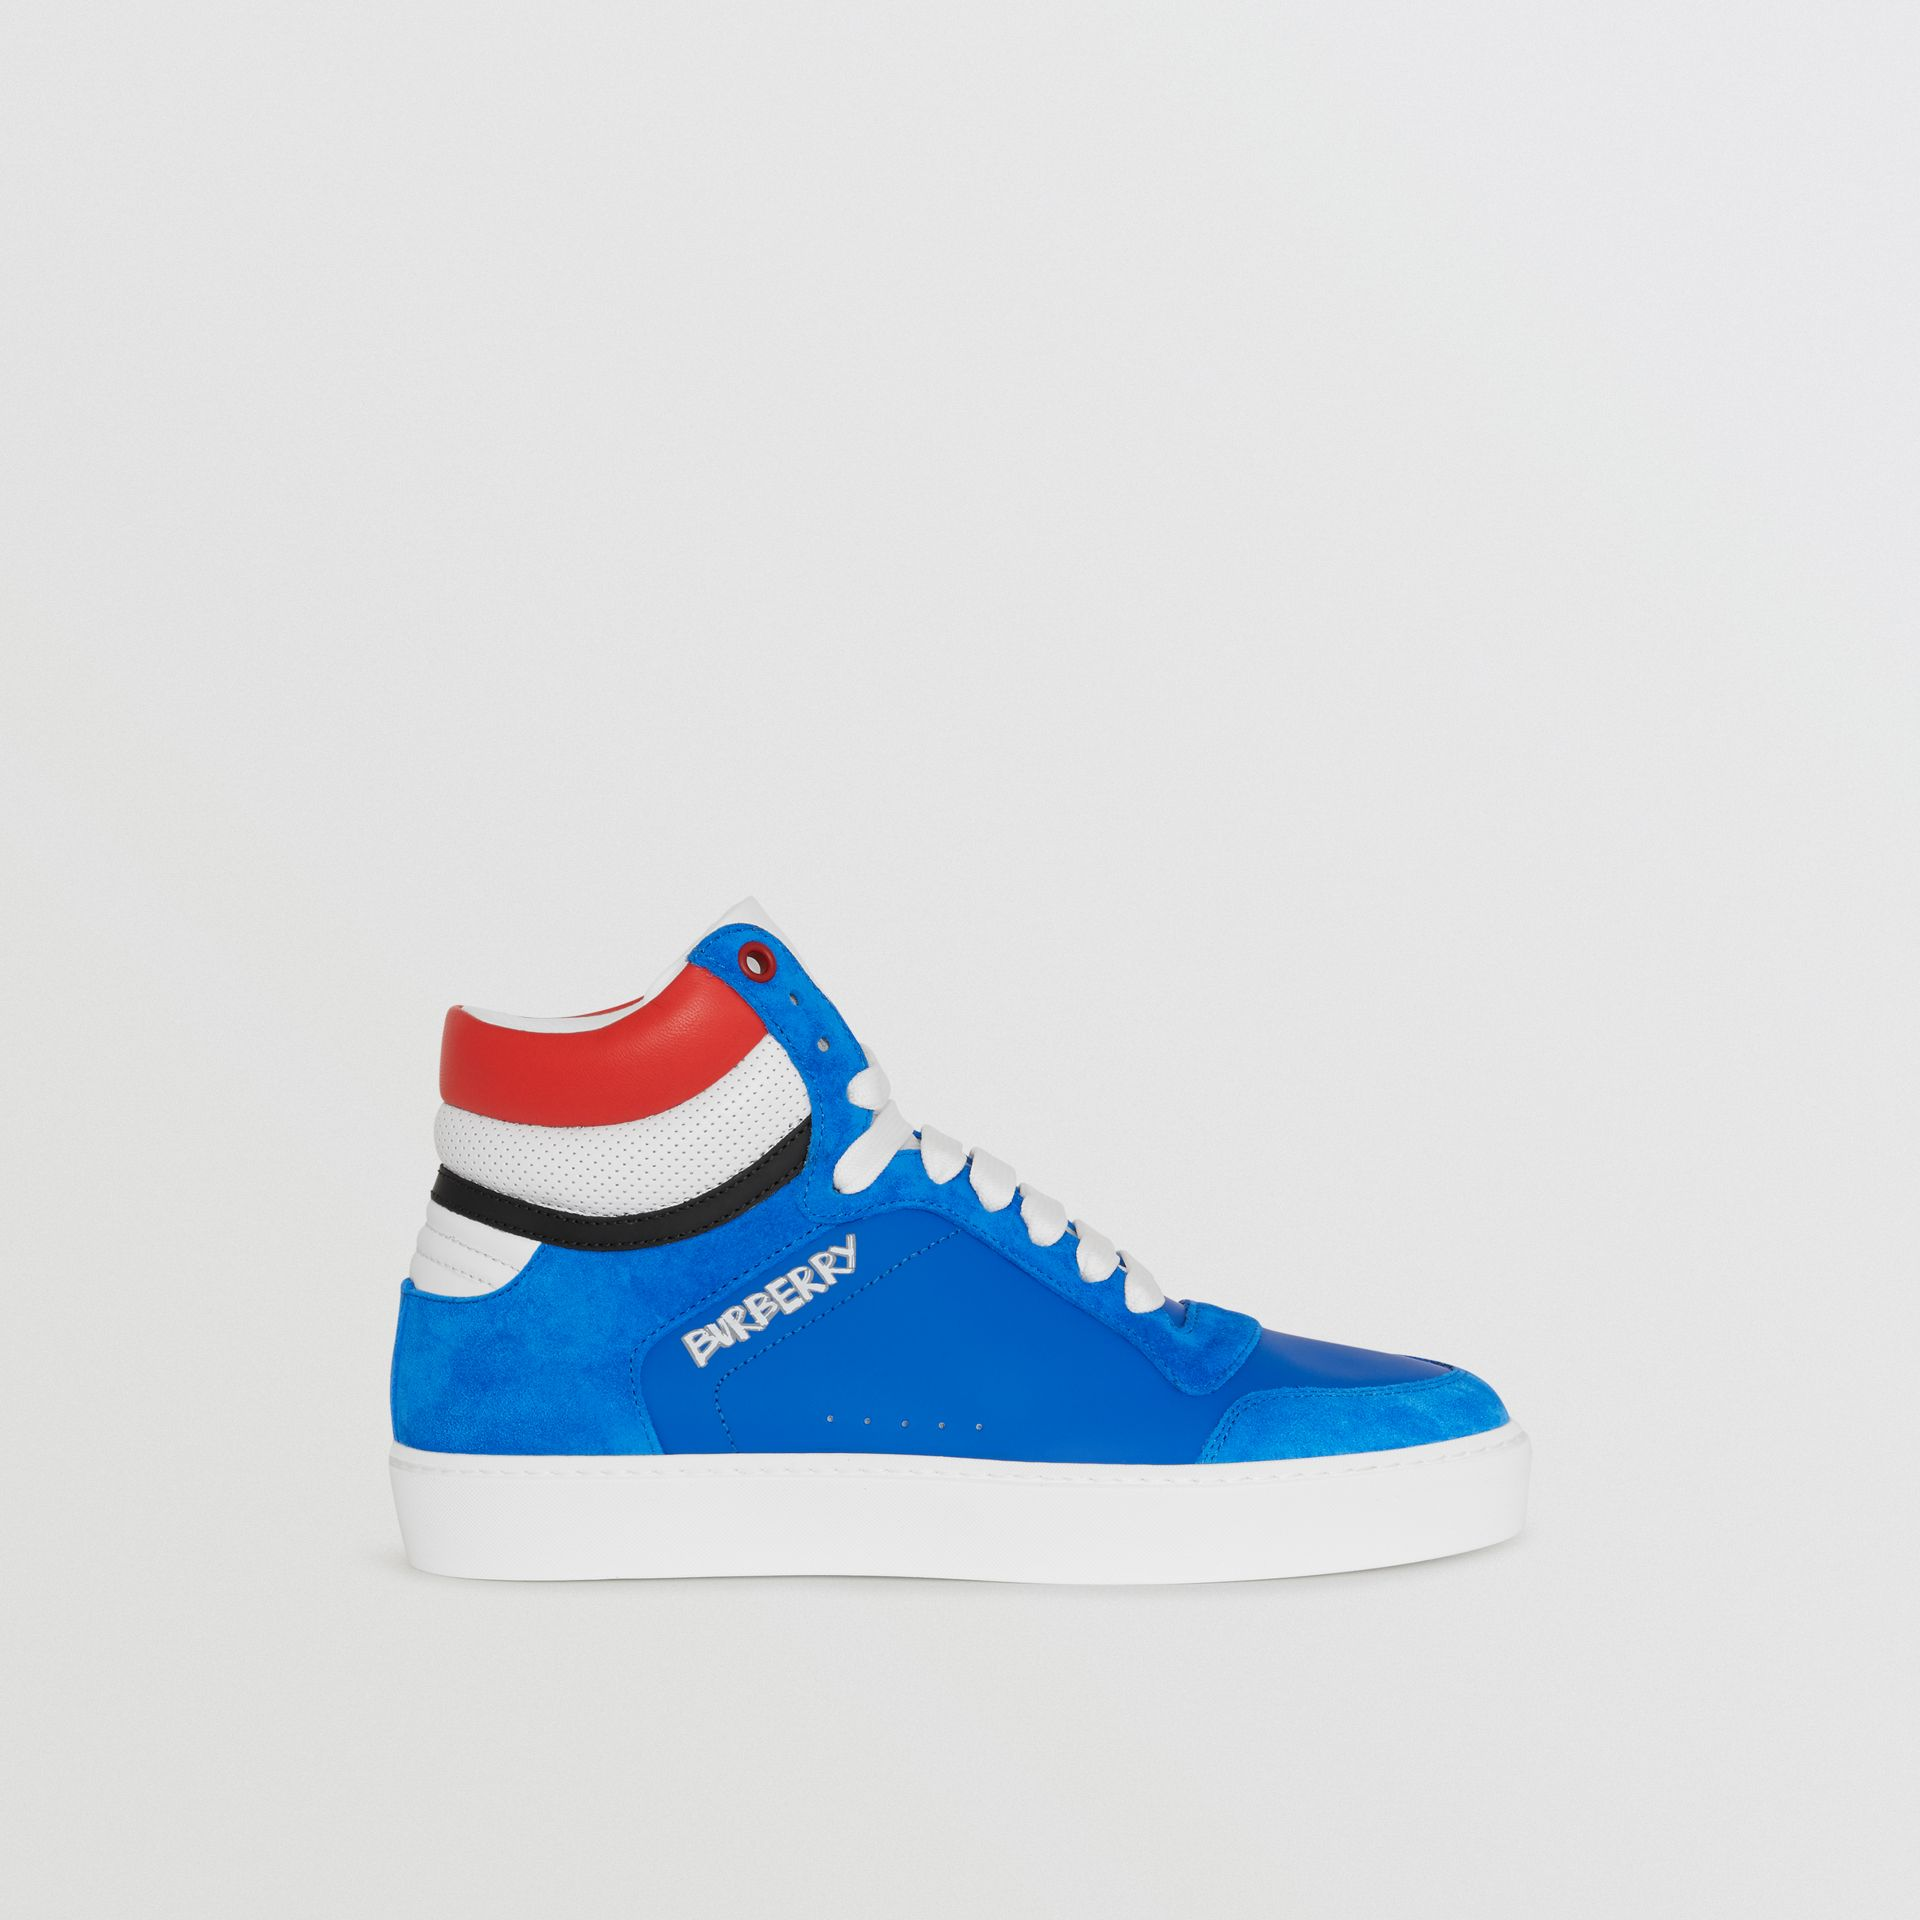 Leather and Suede High-top Sneakers in Bright Sky Blue - Women | Burberry Hong Kong - gallery image 5